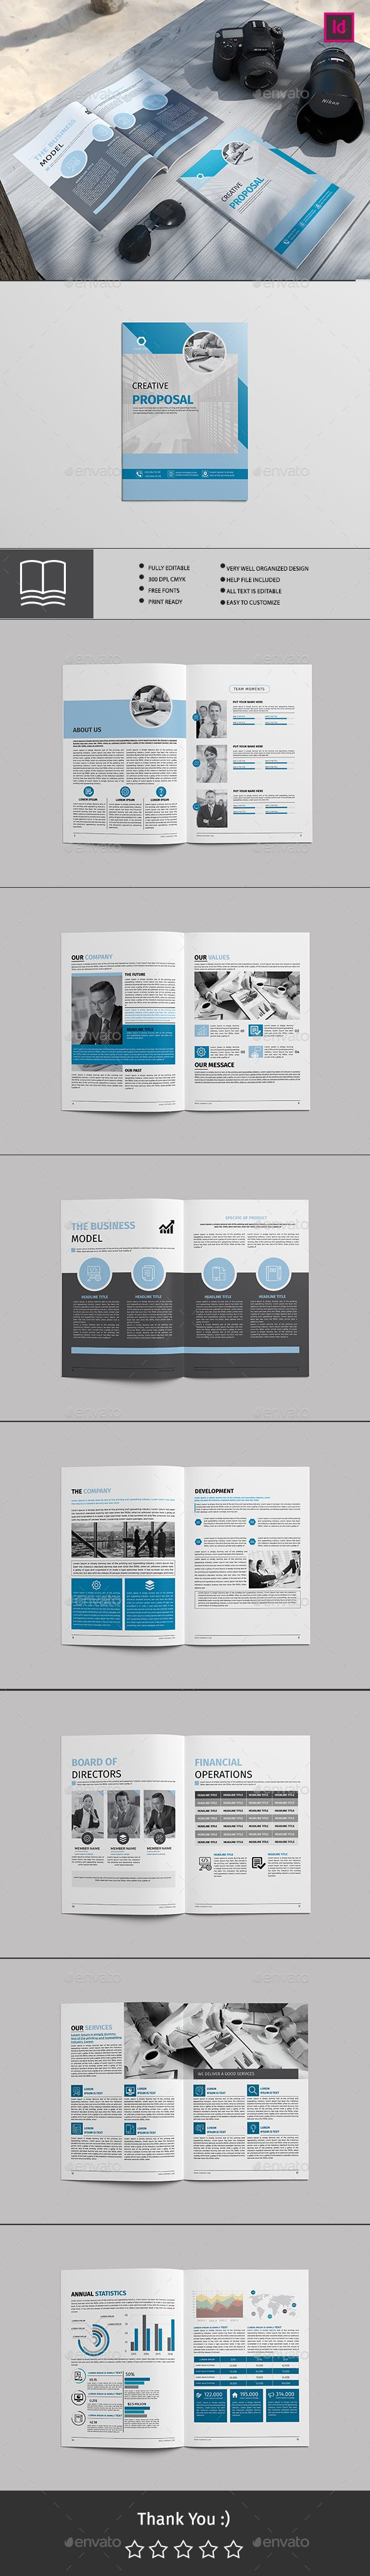 Professional, Clean and Modern 16 Page Corporate Business Brochure ...